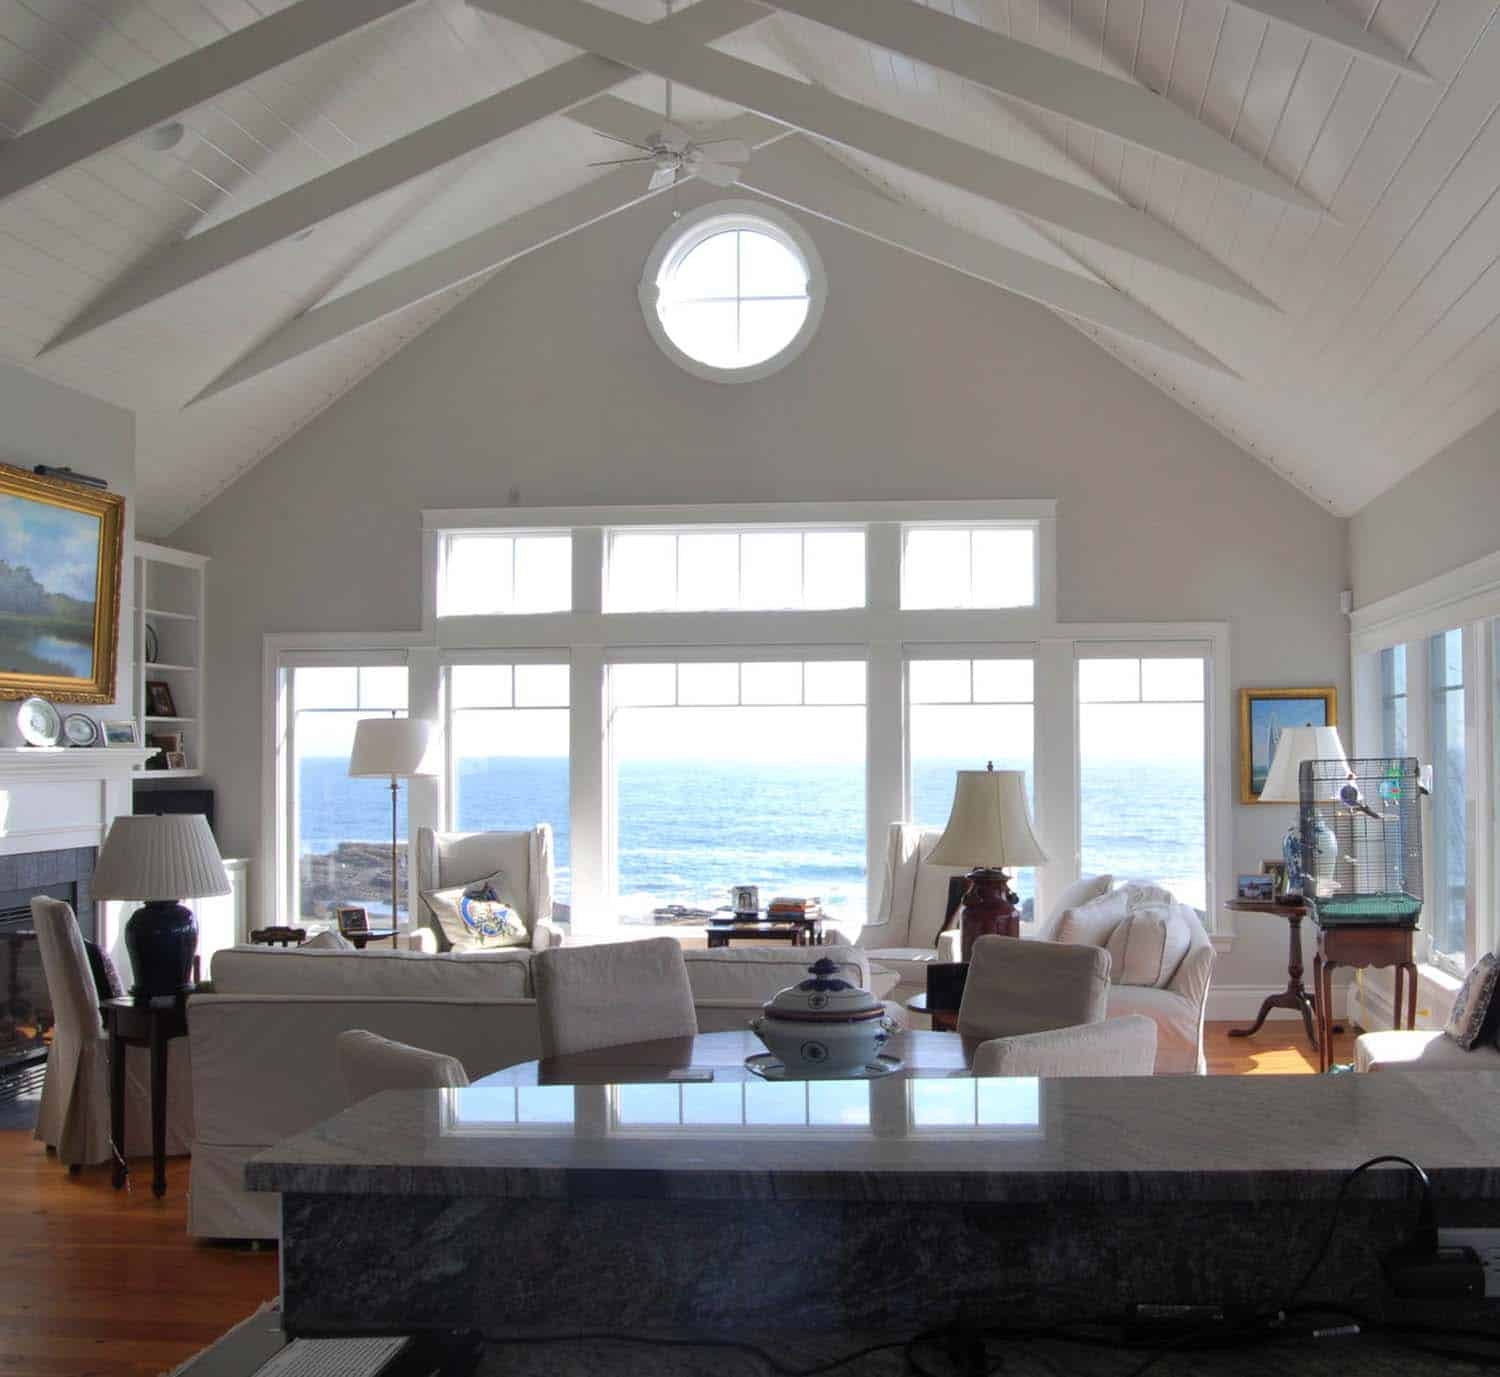 Elegant Seaside Cottage-Whipple Callender Architects-03-1 Kindesign